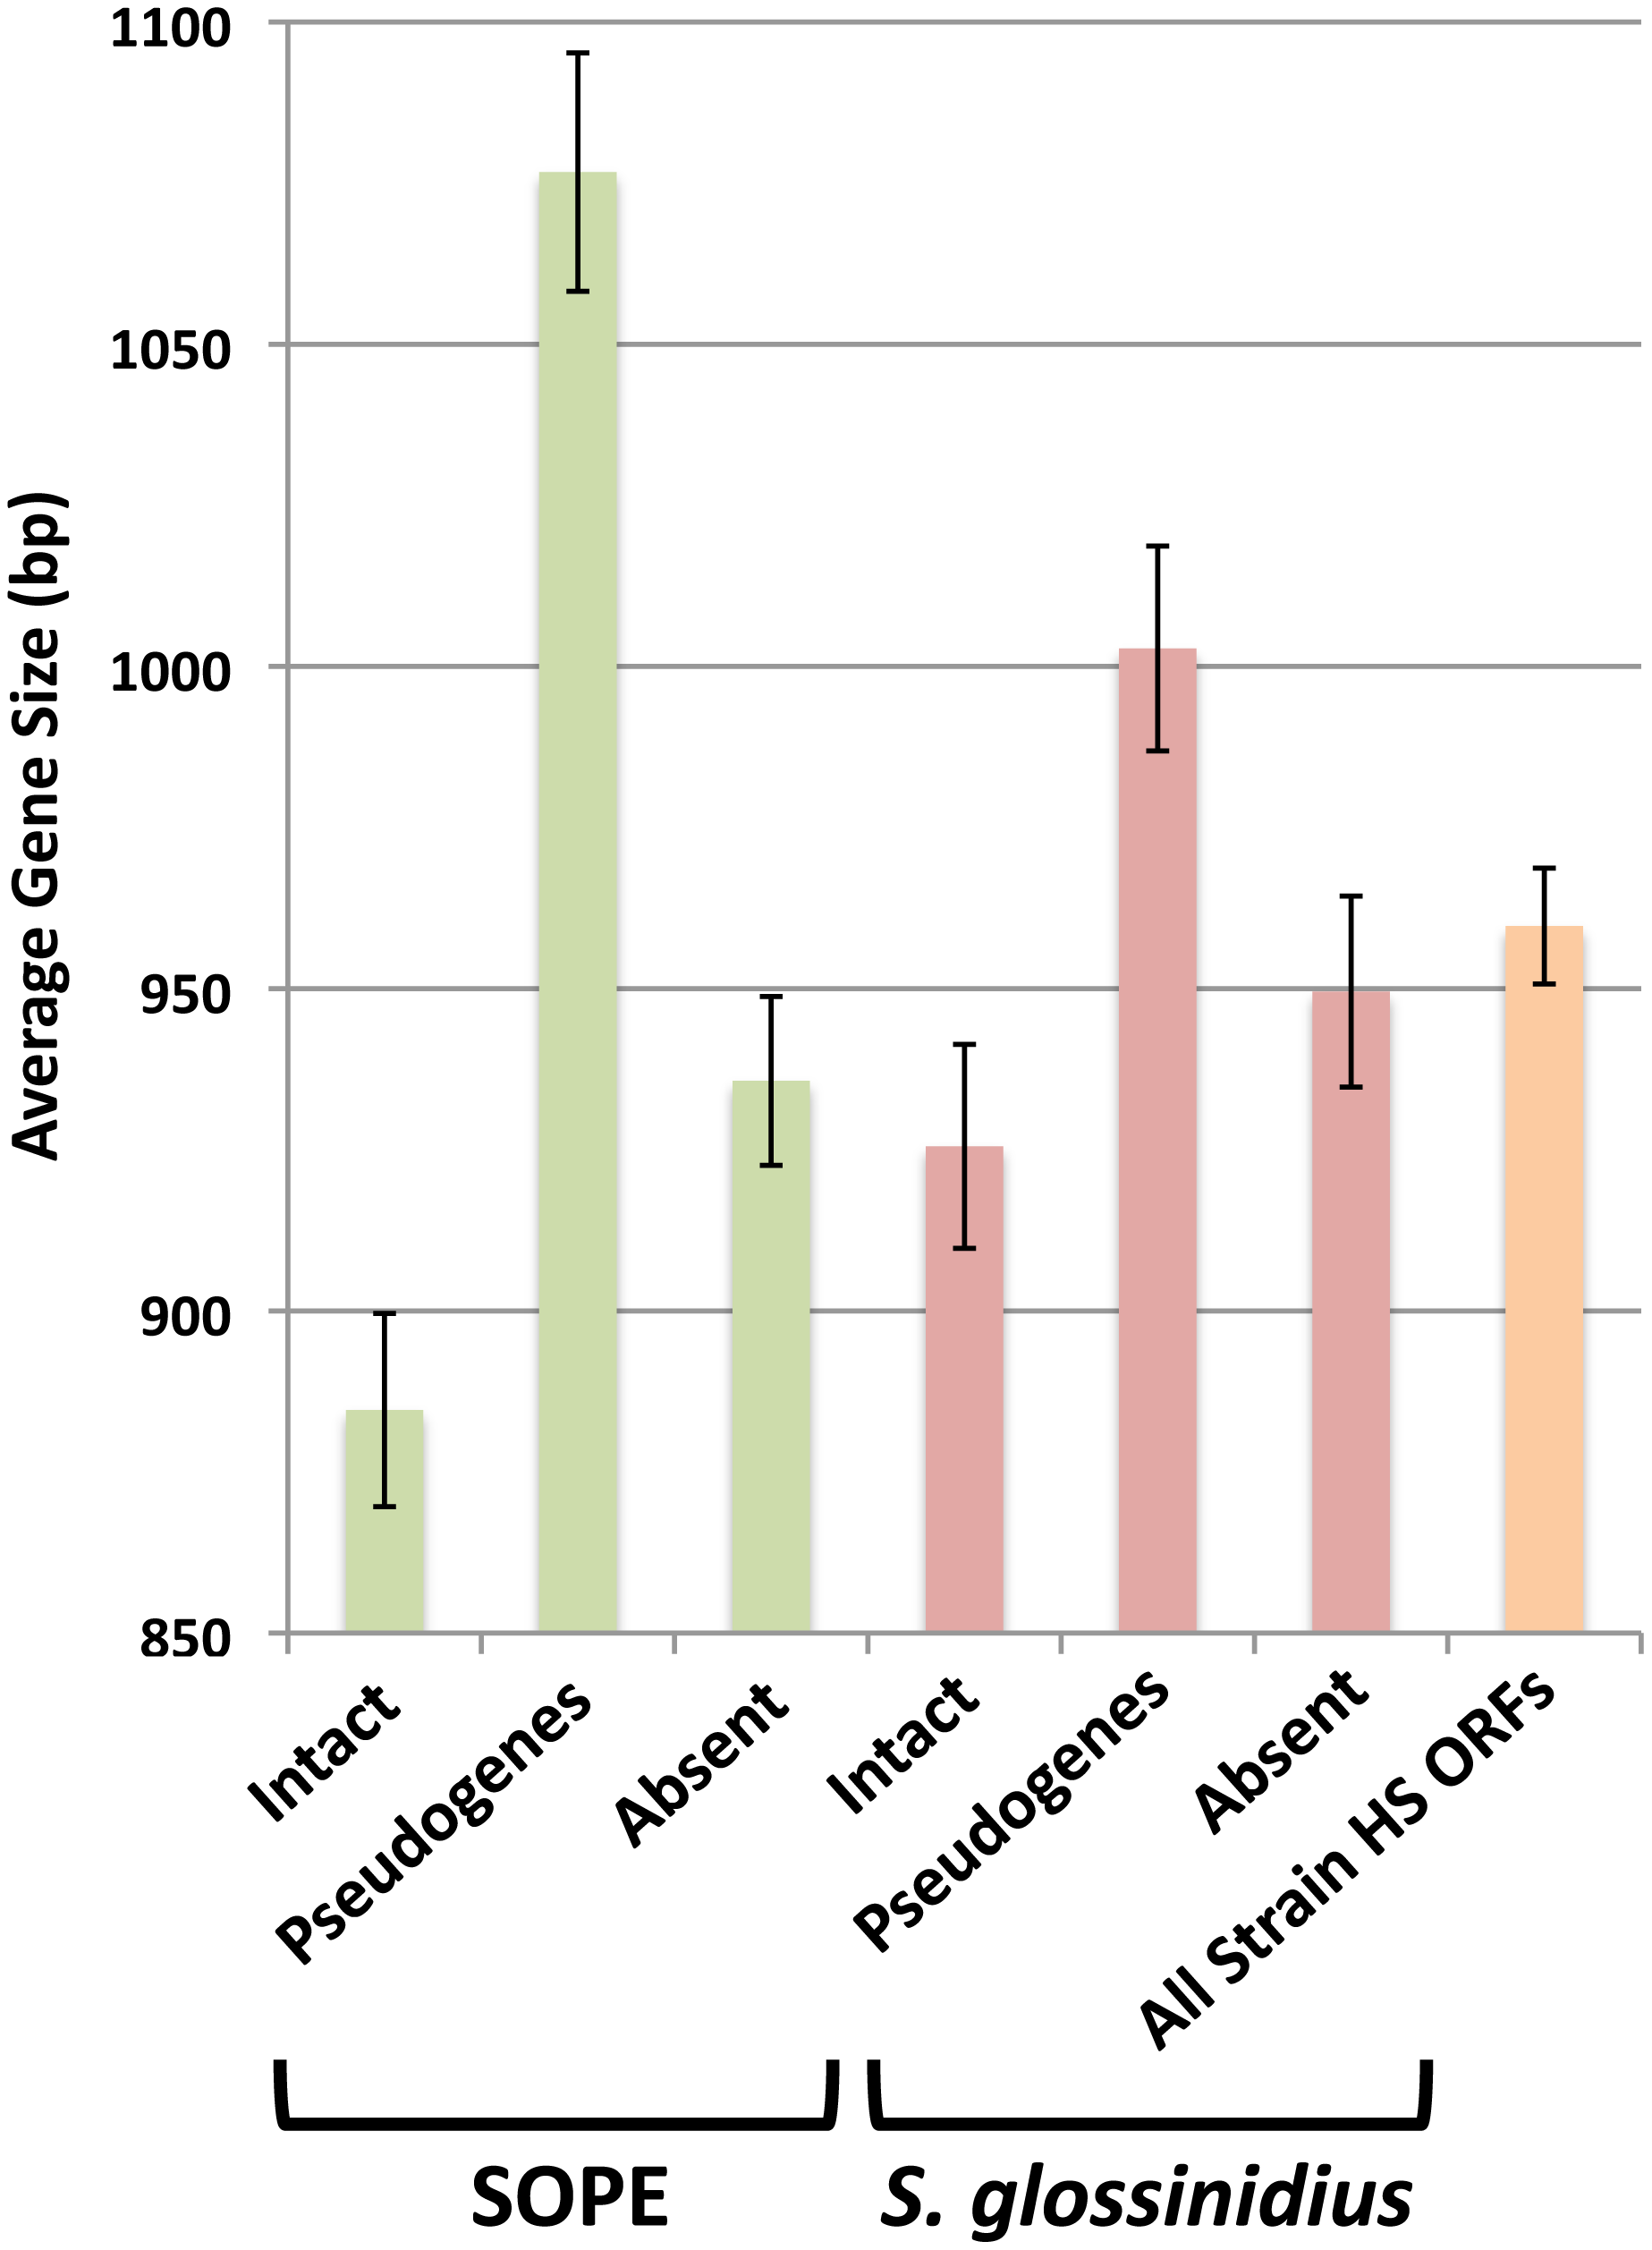 Average size of strain HS orthologs classified as intact, pseudogenized, and absent in SOPE (green) and <i>S. glossinidius</i> (red).